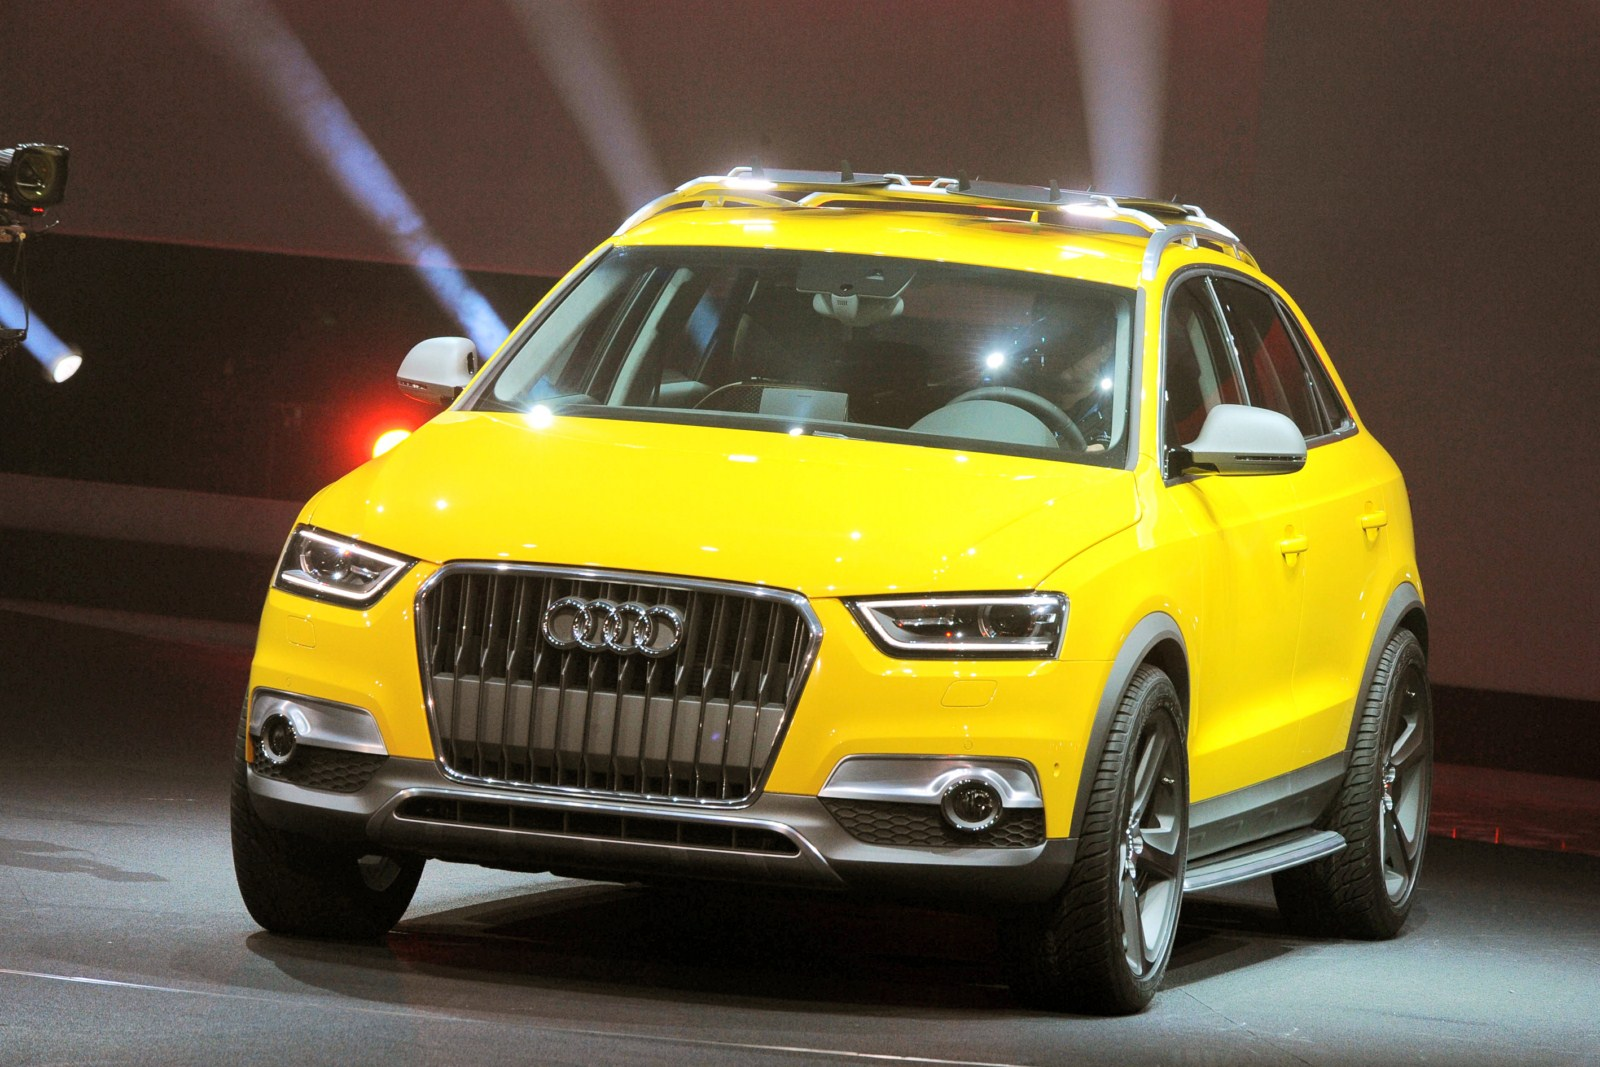 2019 Audi Q3 Jinlong Yufeng Concept photo - 2